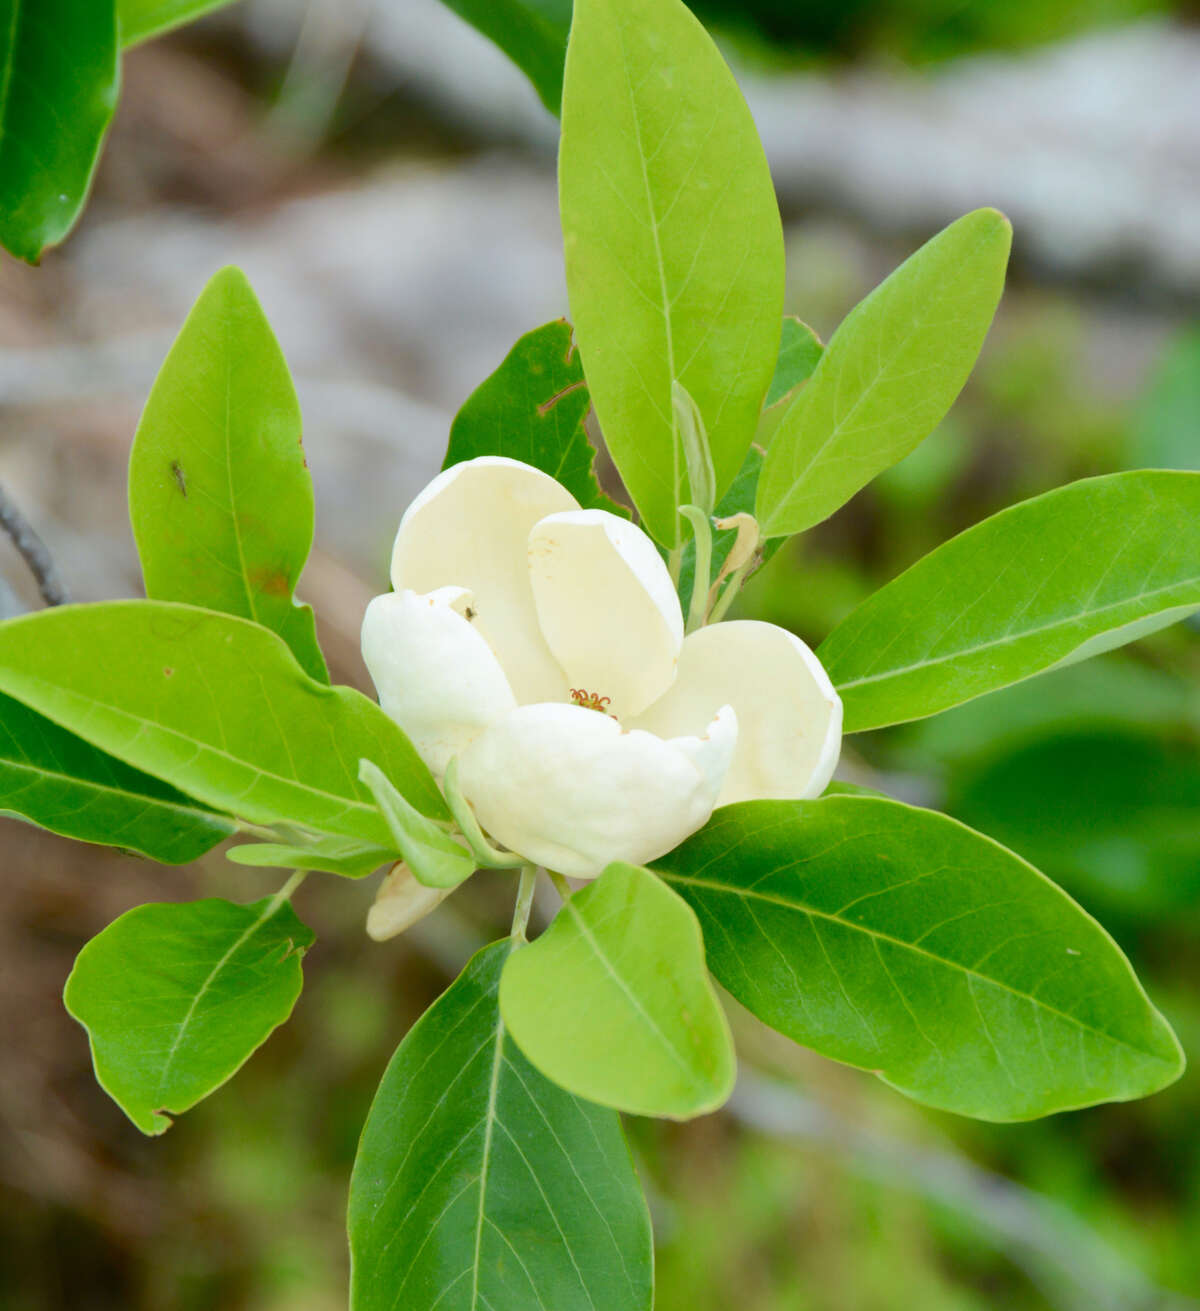 The sweet bay magnolia is the best magnolia for the Northeast, says Julianne Klasen-Daoud, store manager at Phantom Gardener in Rhinebeck.